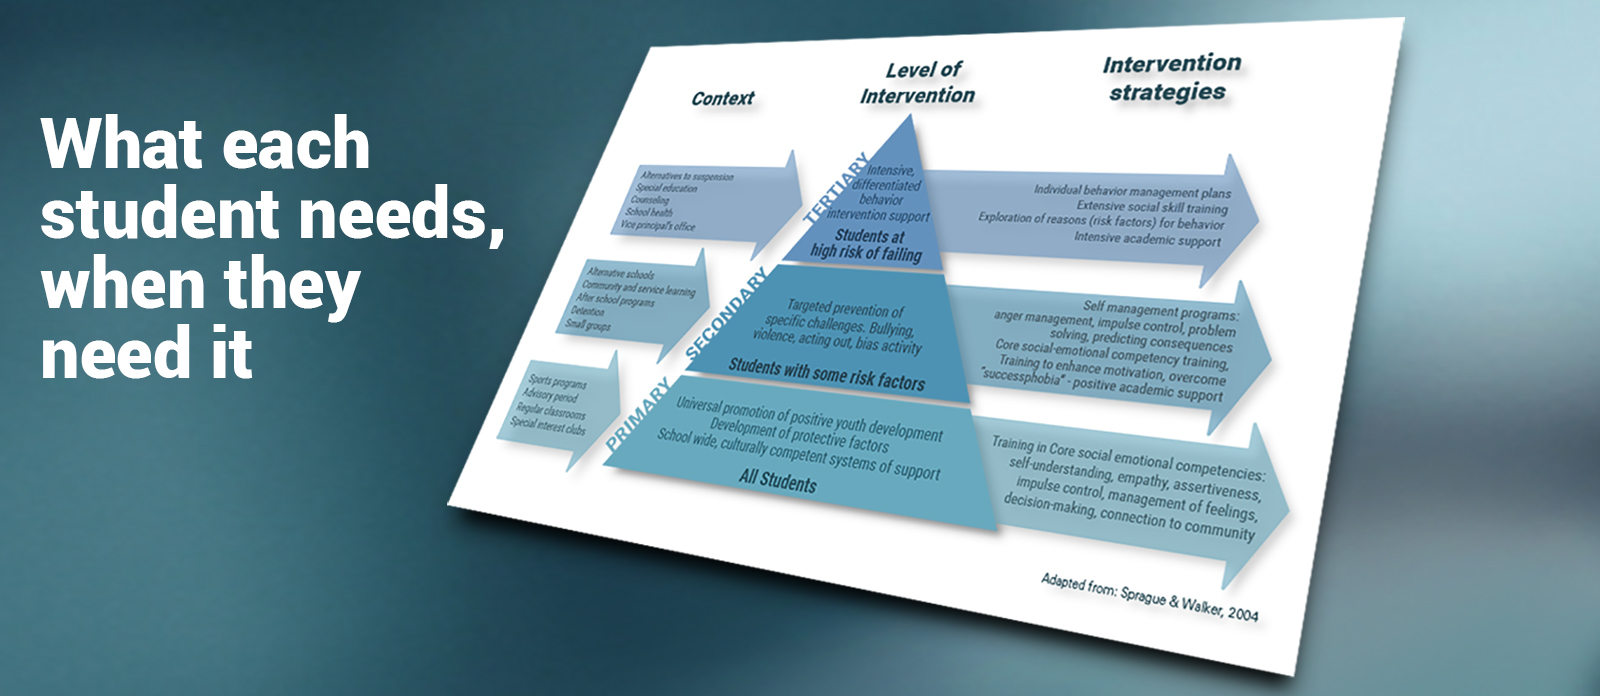 Banner image for the Uses page, which depicts the three different tiers of Ripple Effects' behavioral intervention program as three levels of a pyramid.